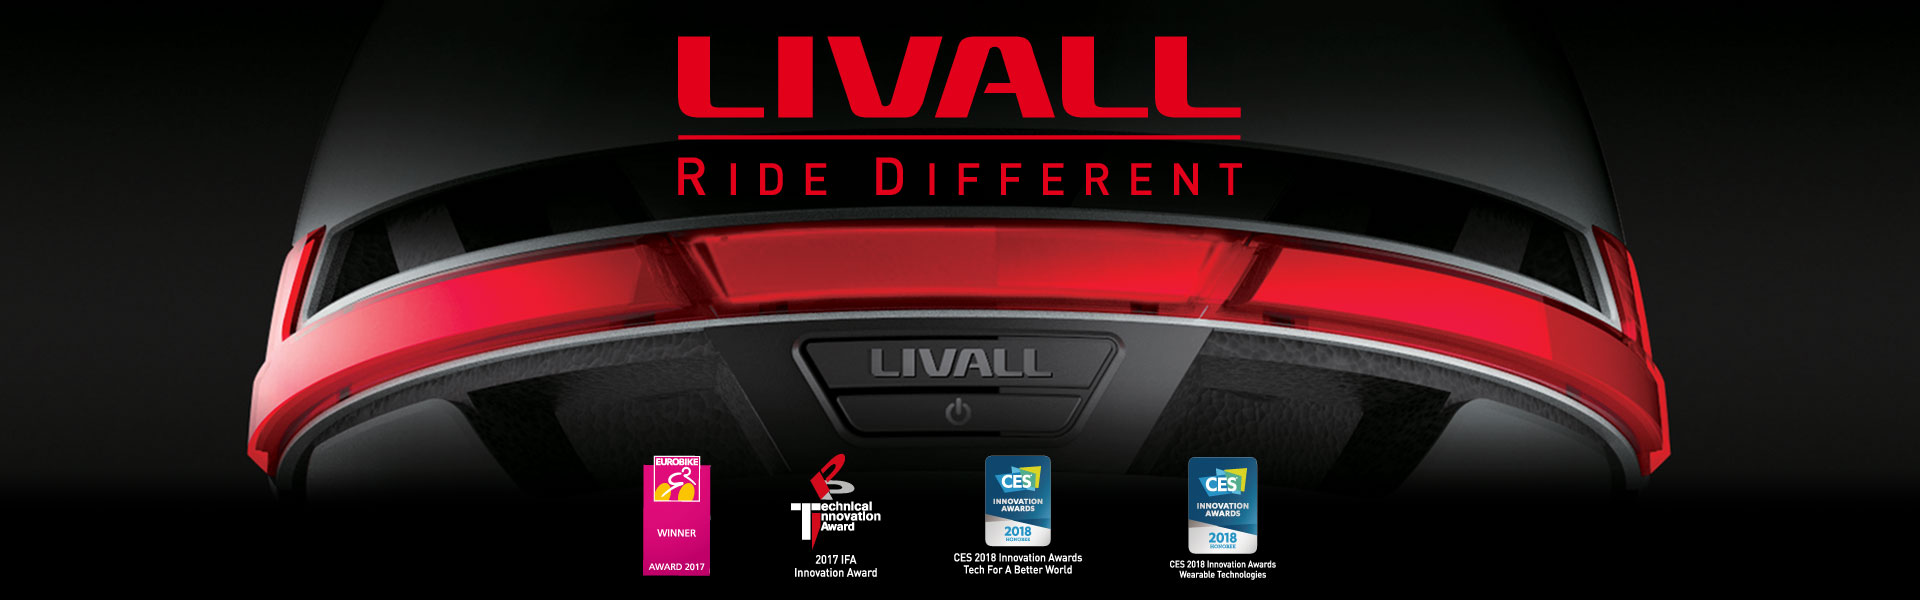 Livall Ride Different